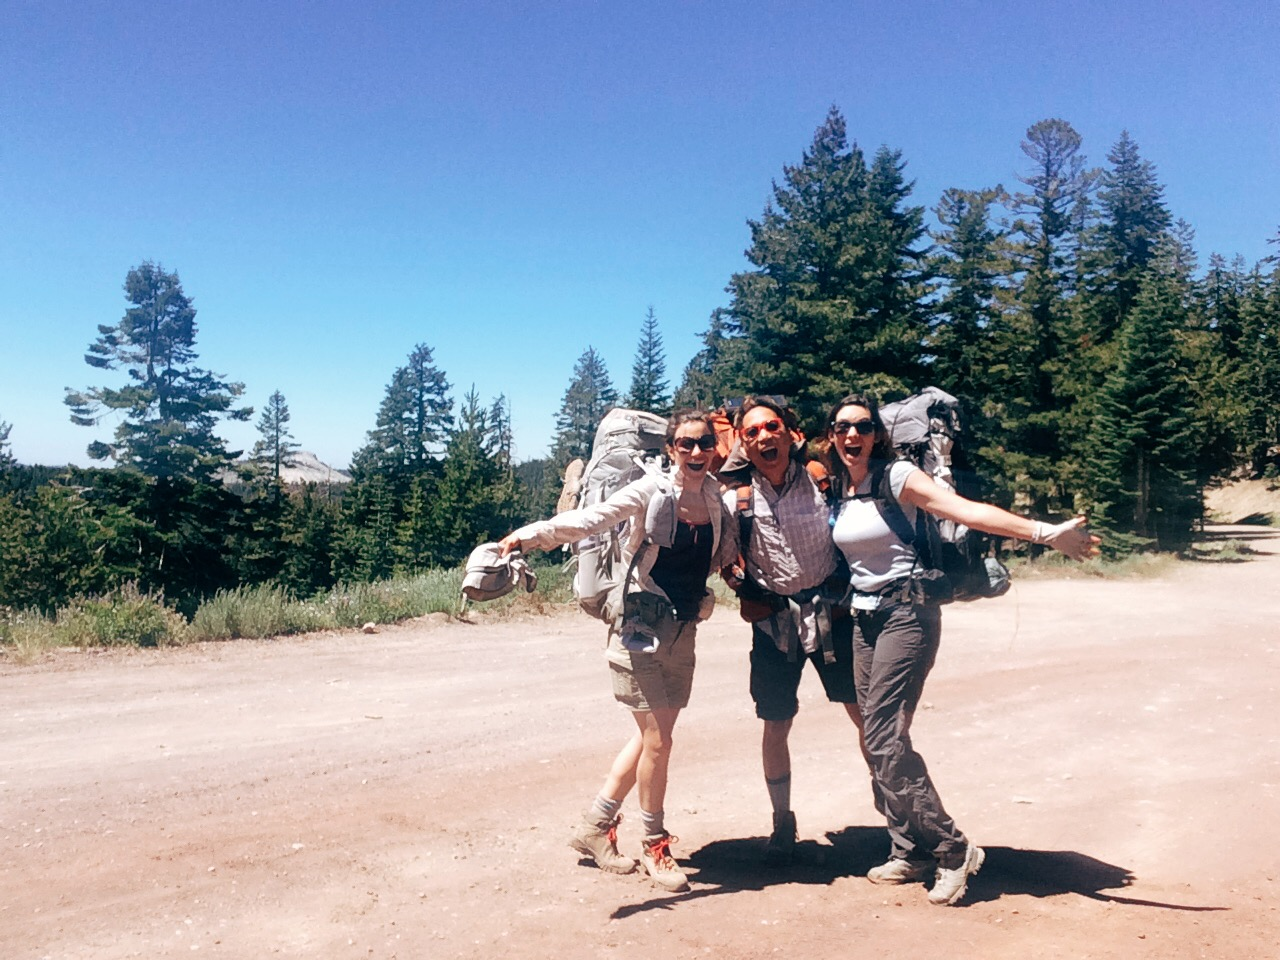 And it begins:Barker Pass Trailhead